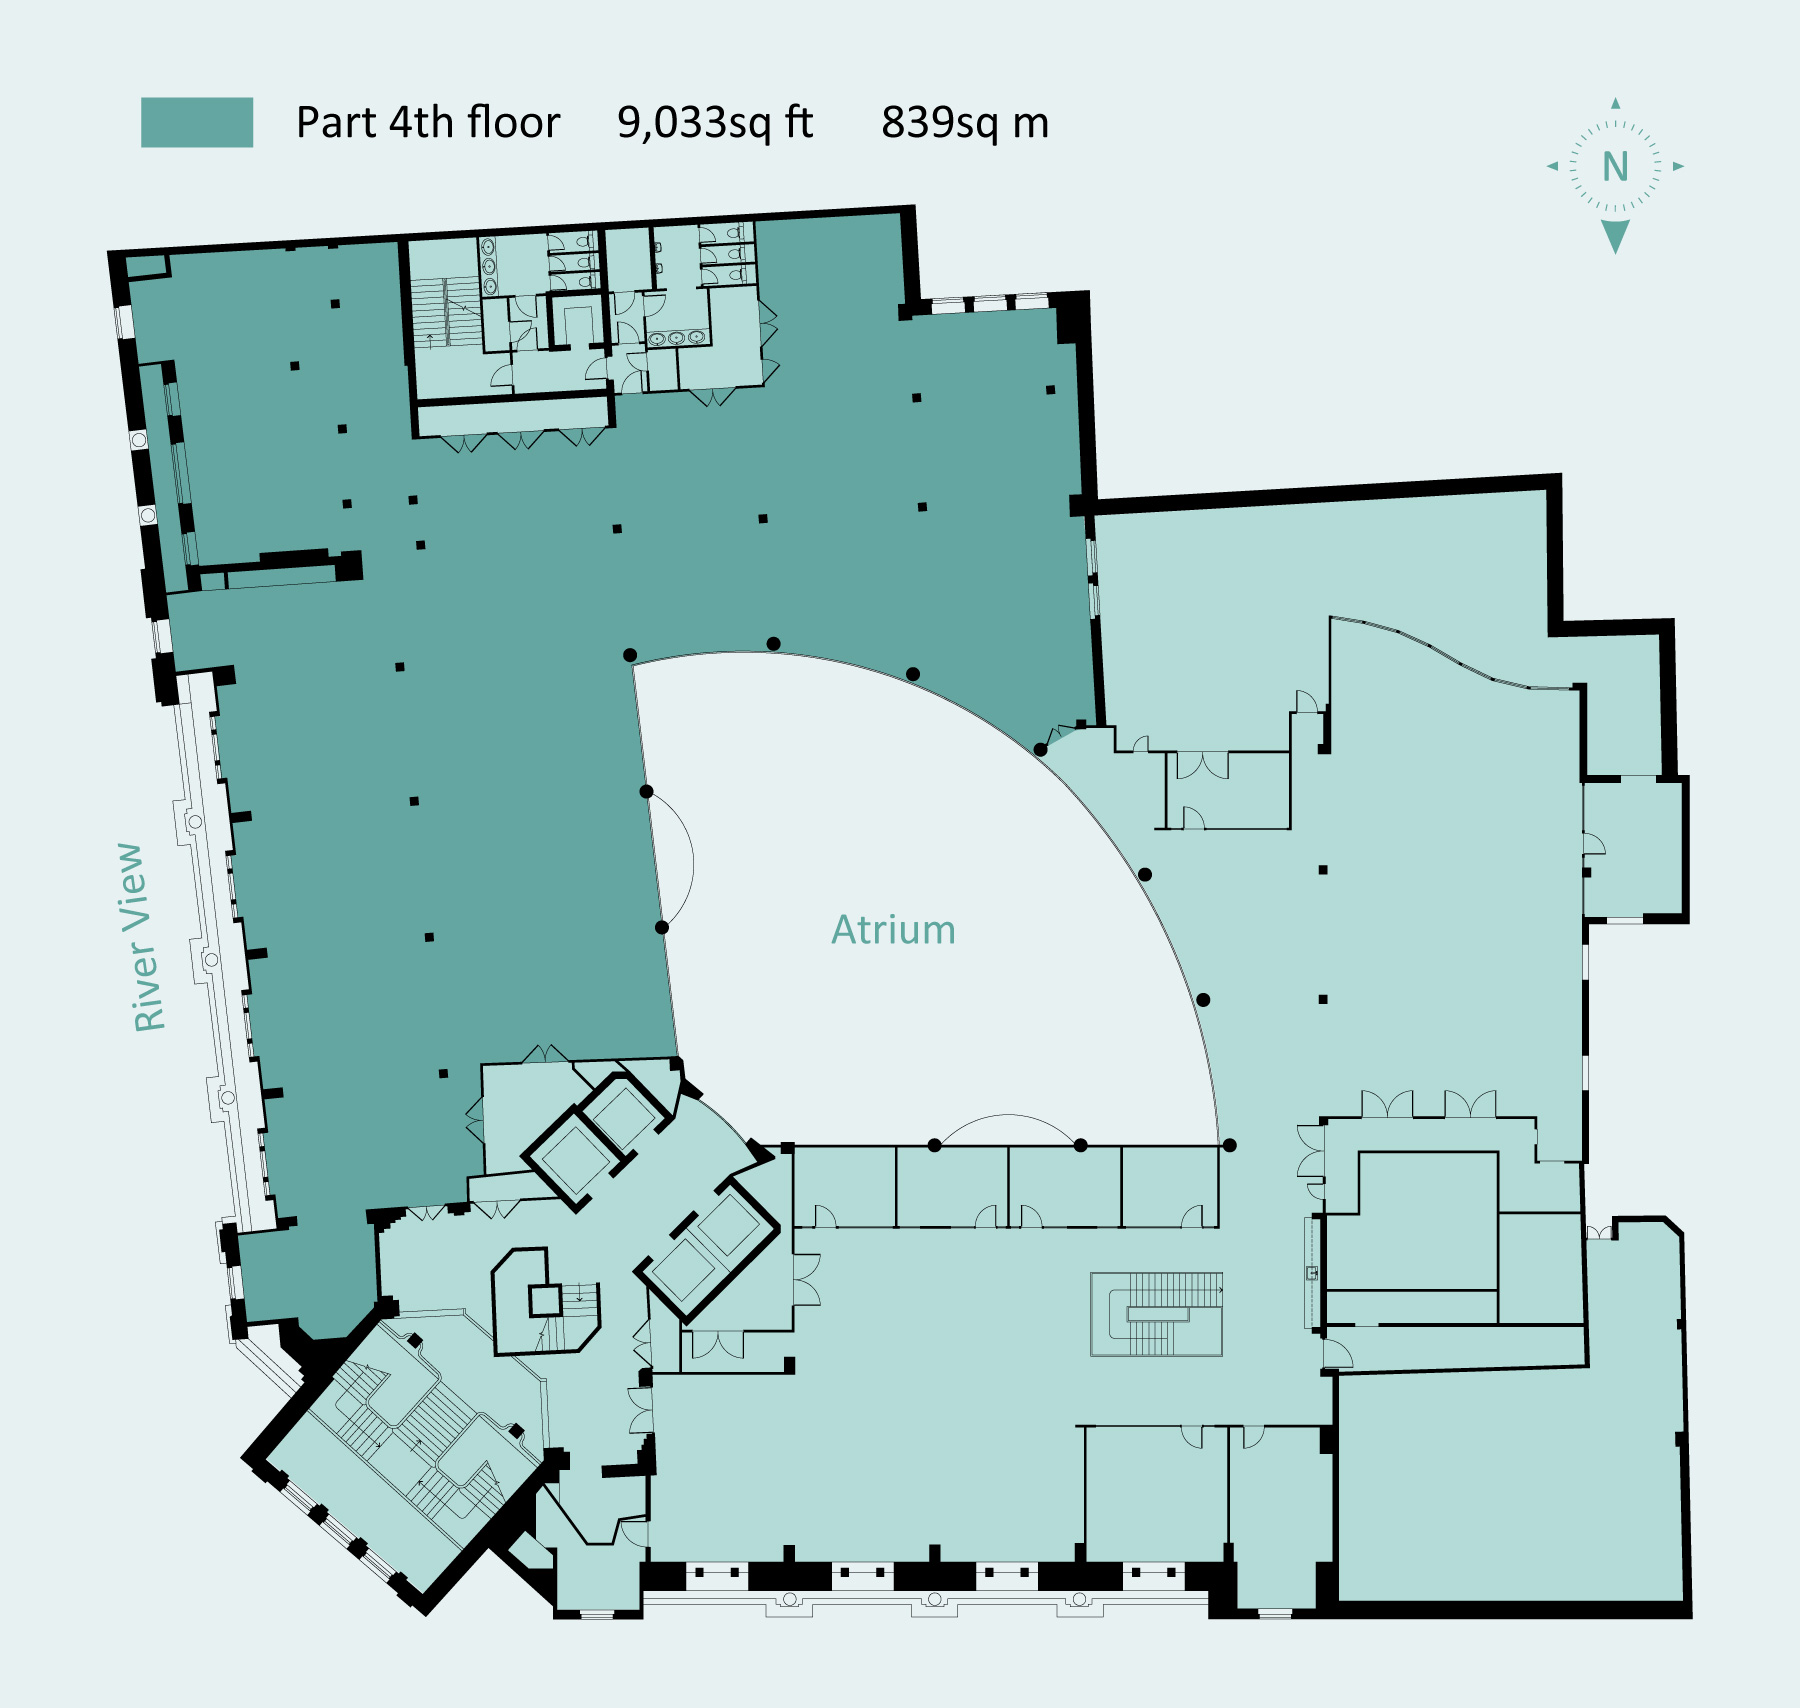 NB Entire floor of 16,500 sq ft available by arrangement